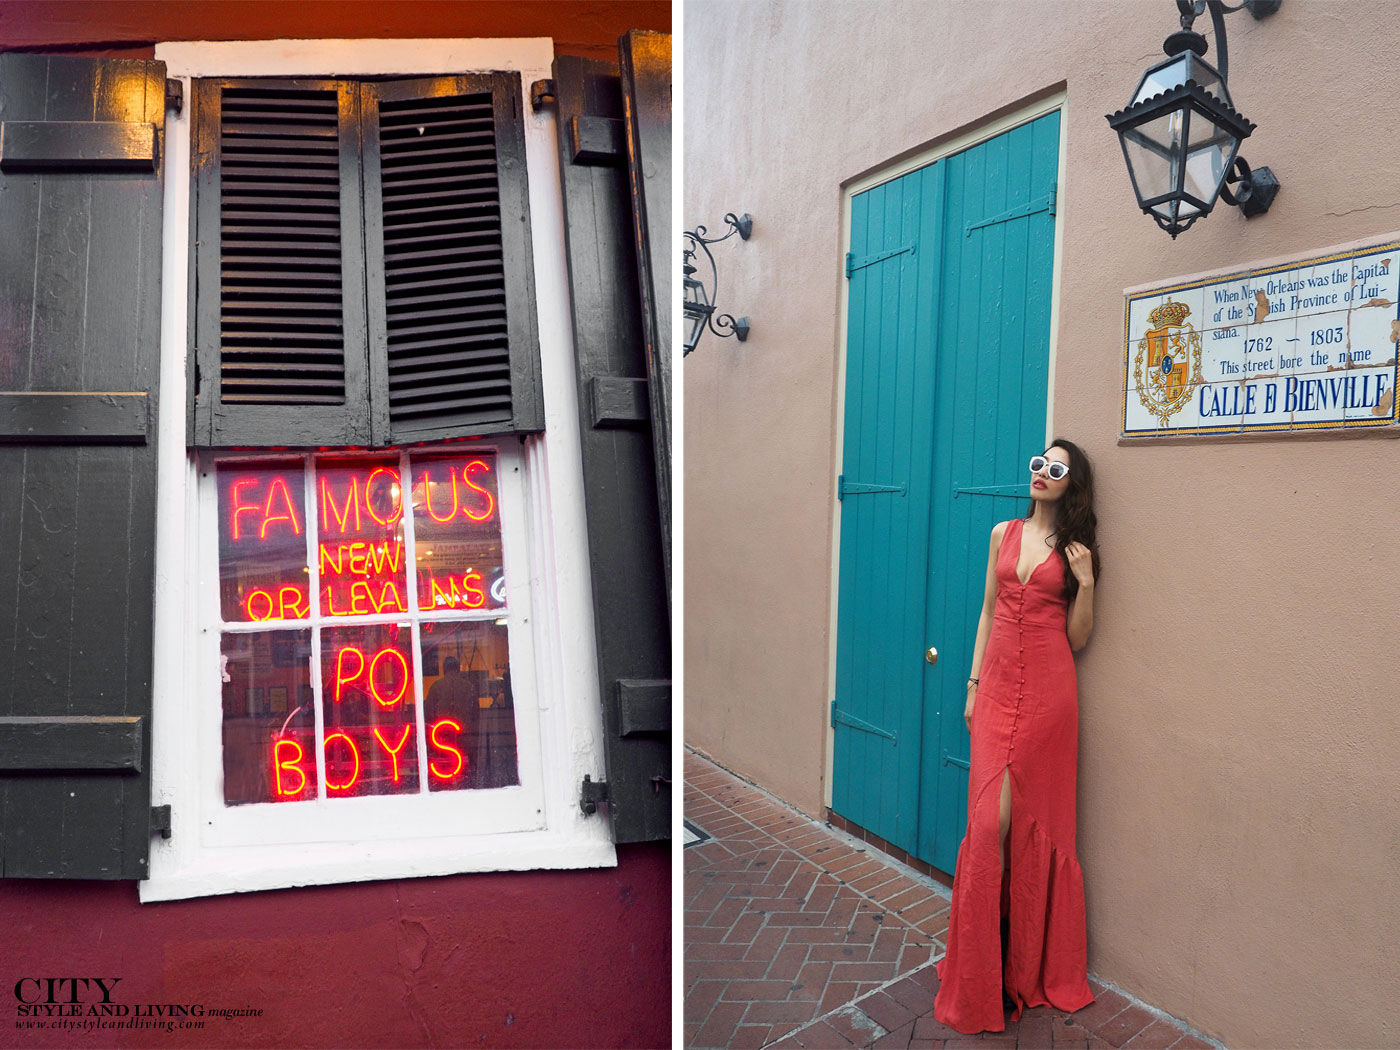 City style and living magazine The Editors Notebook style fashion blogger Shivana Maharaj New Orleans French Quarter Orange Dress po boys sign